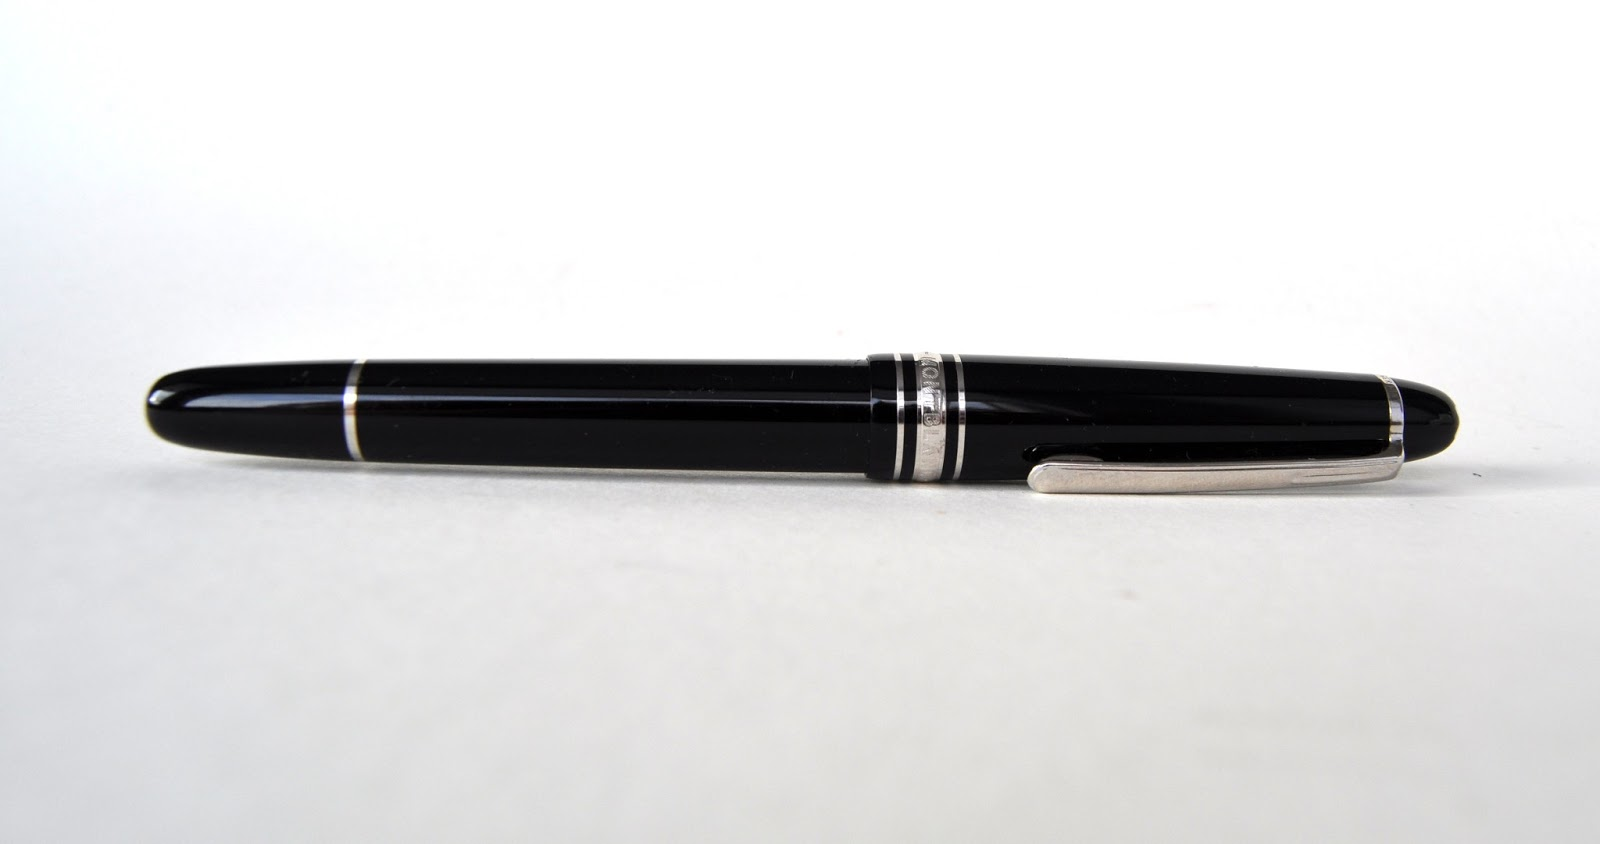 ac2a0aeeace Slim line and lightweight the Montblanc Classique is an unassuming pen.  This Meisterstück features a black glossy barrel and cap